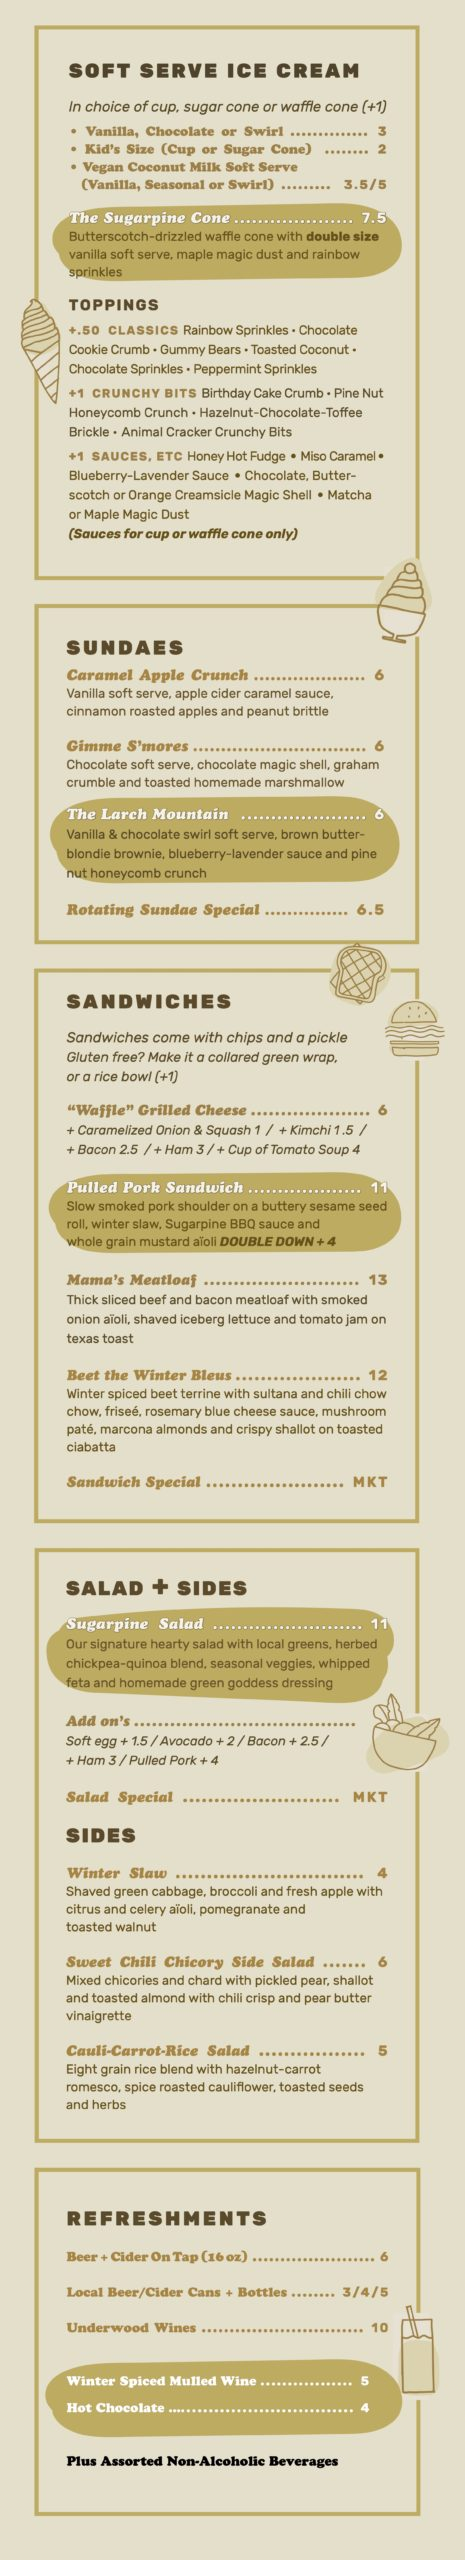 Menu Vertical 1.2.19